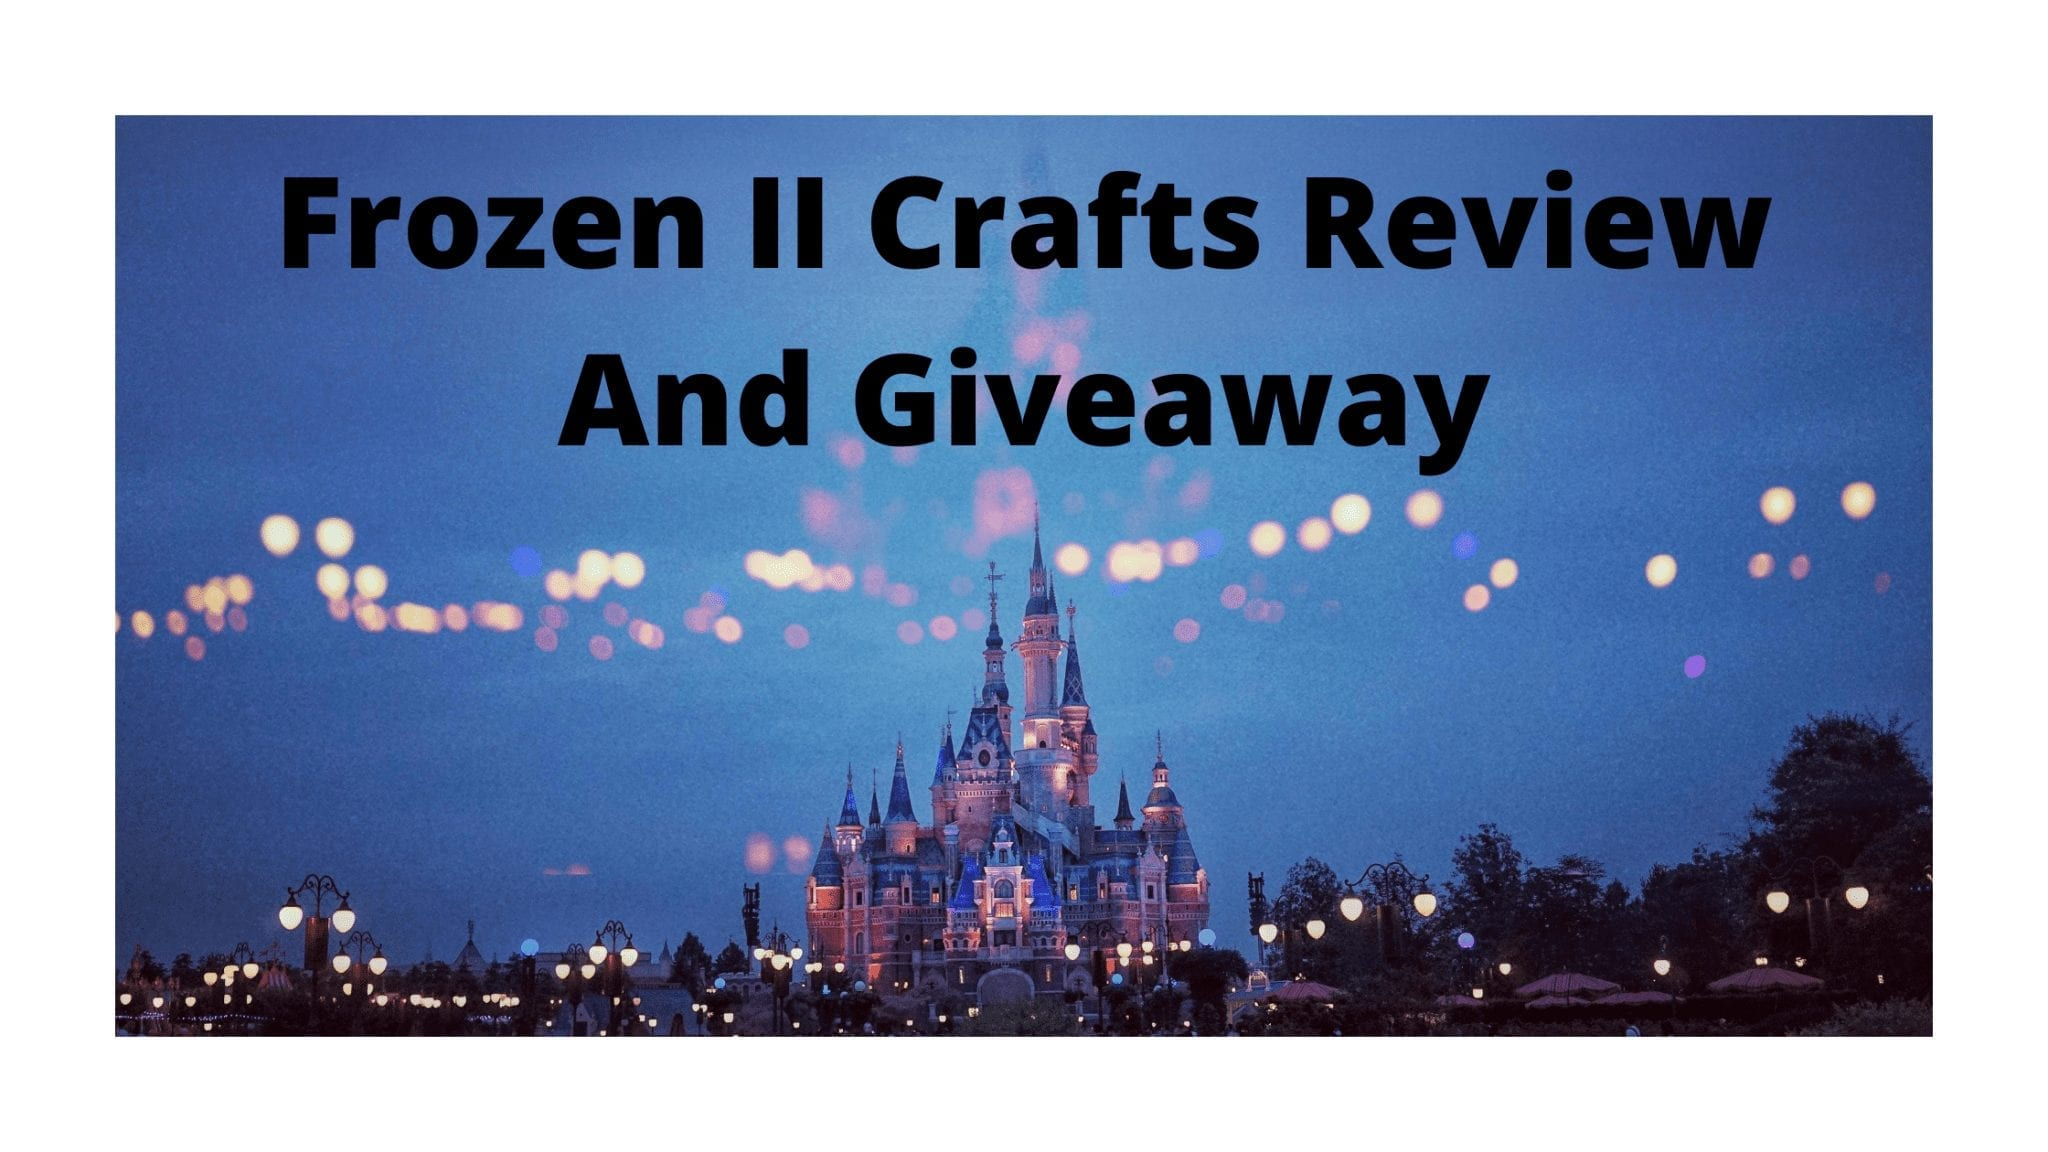 Frozen II Crafts Review And Giveaway